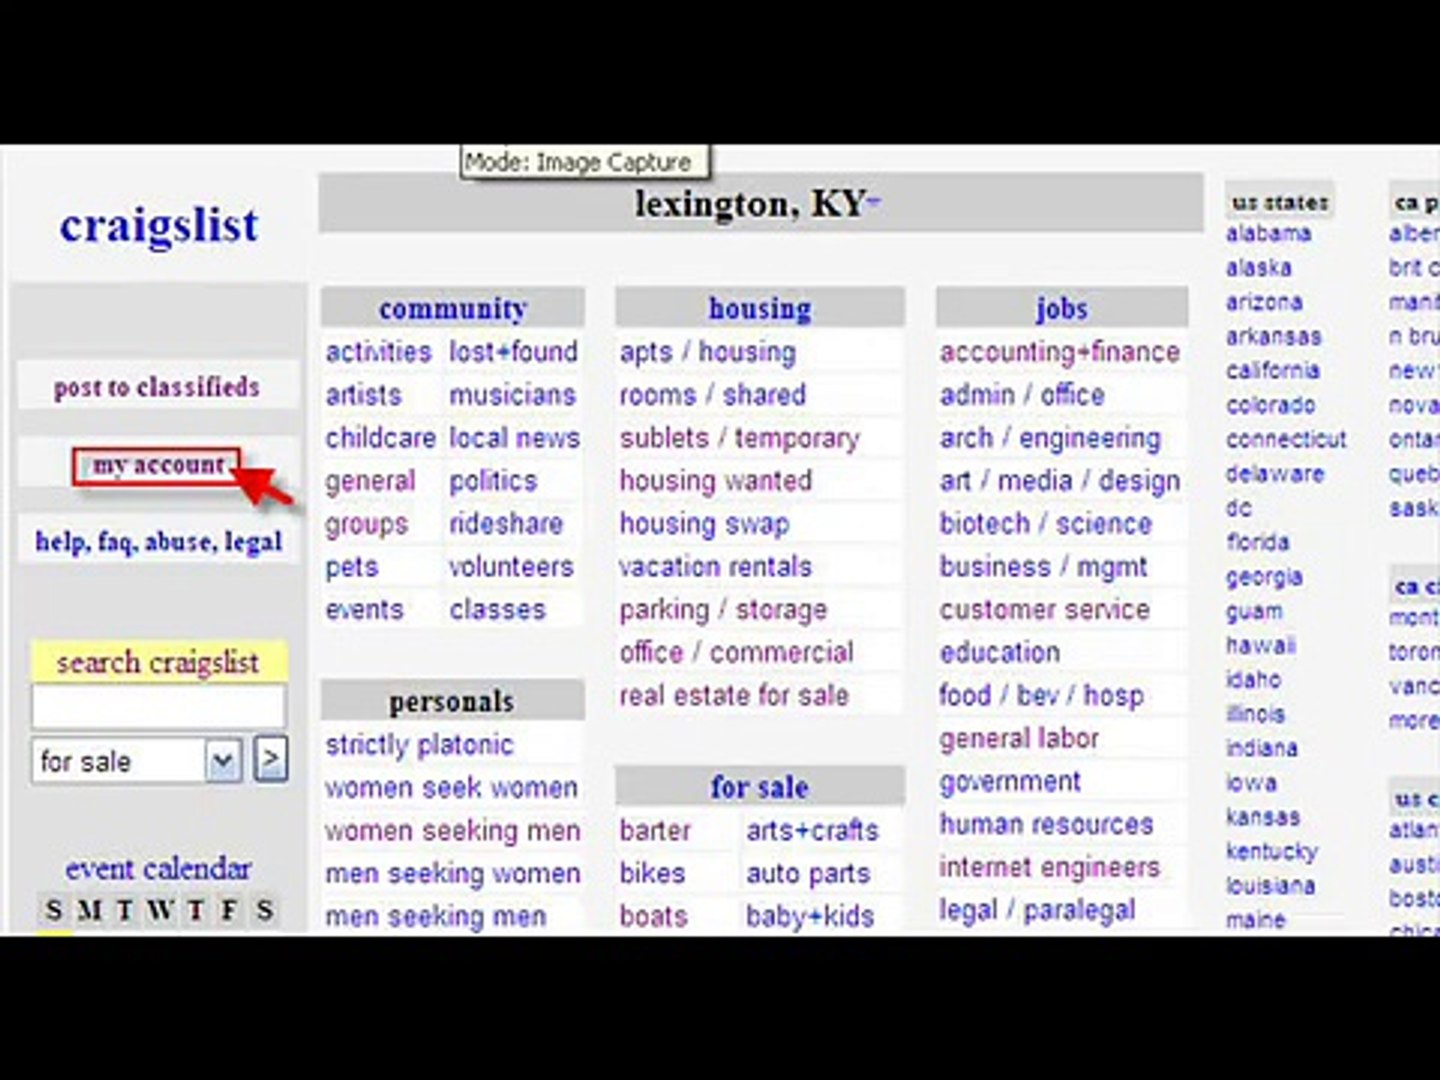 How to post ad on craigslist org